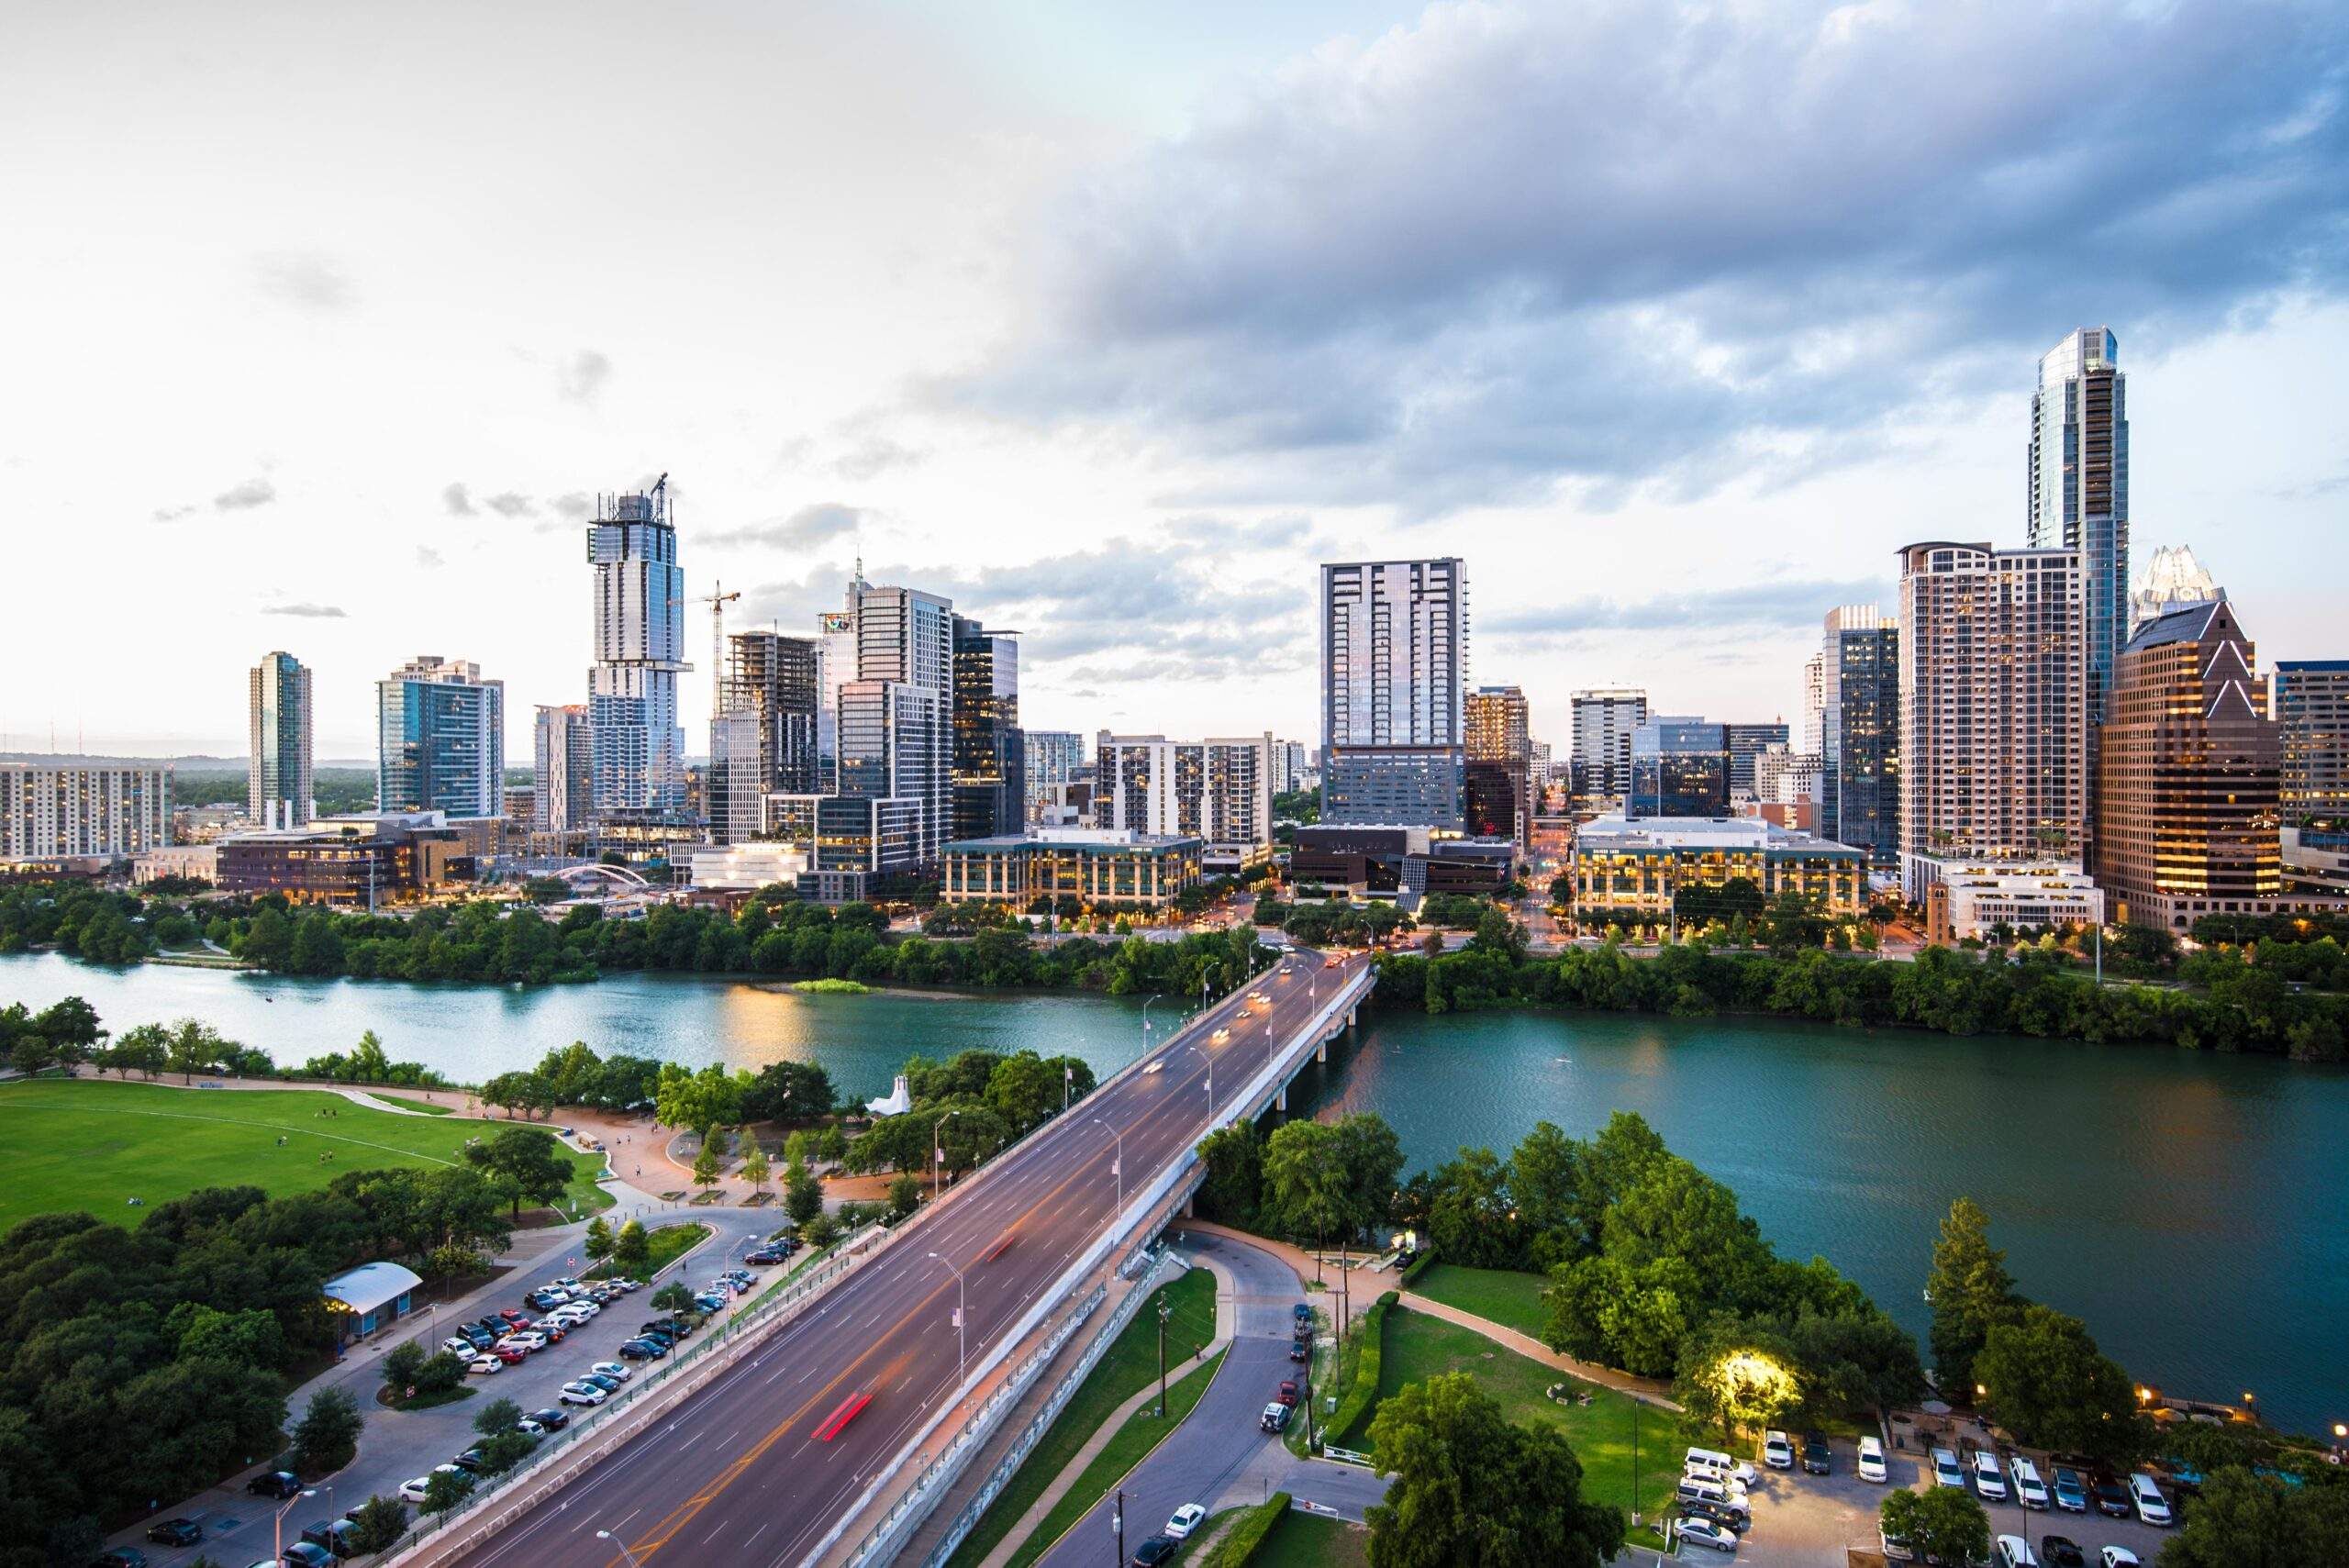 BrighterEd Launches US Transfer Program – Texas in Houston